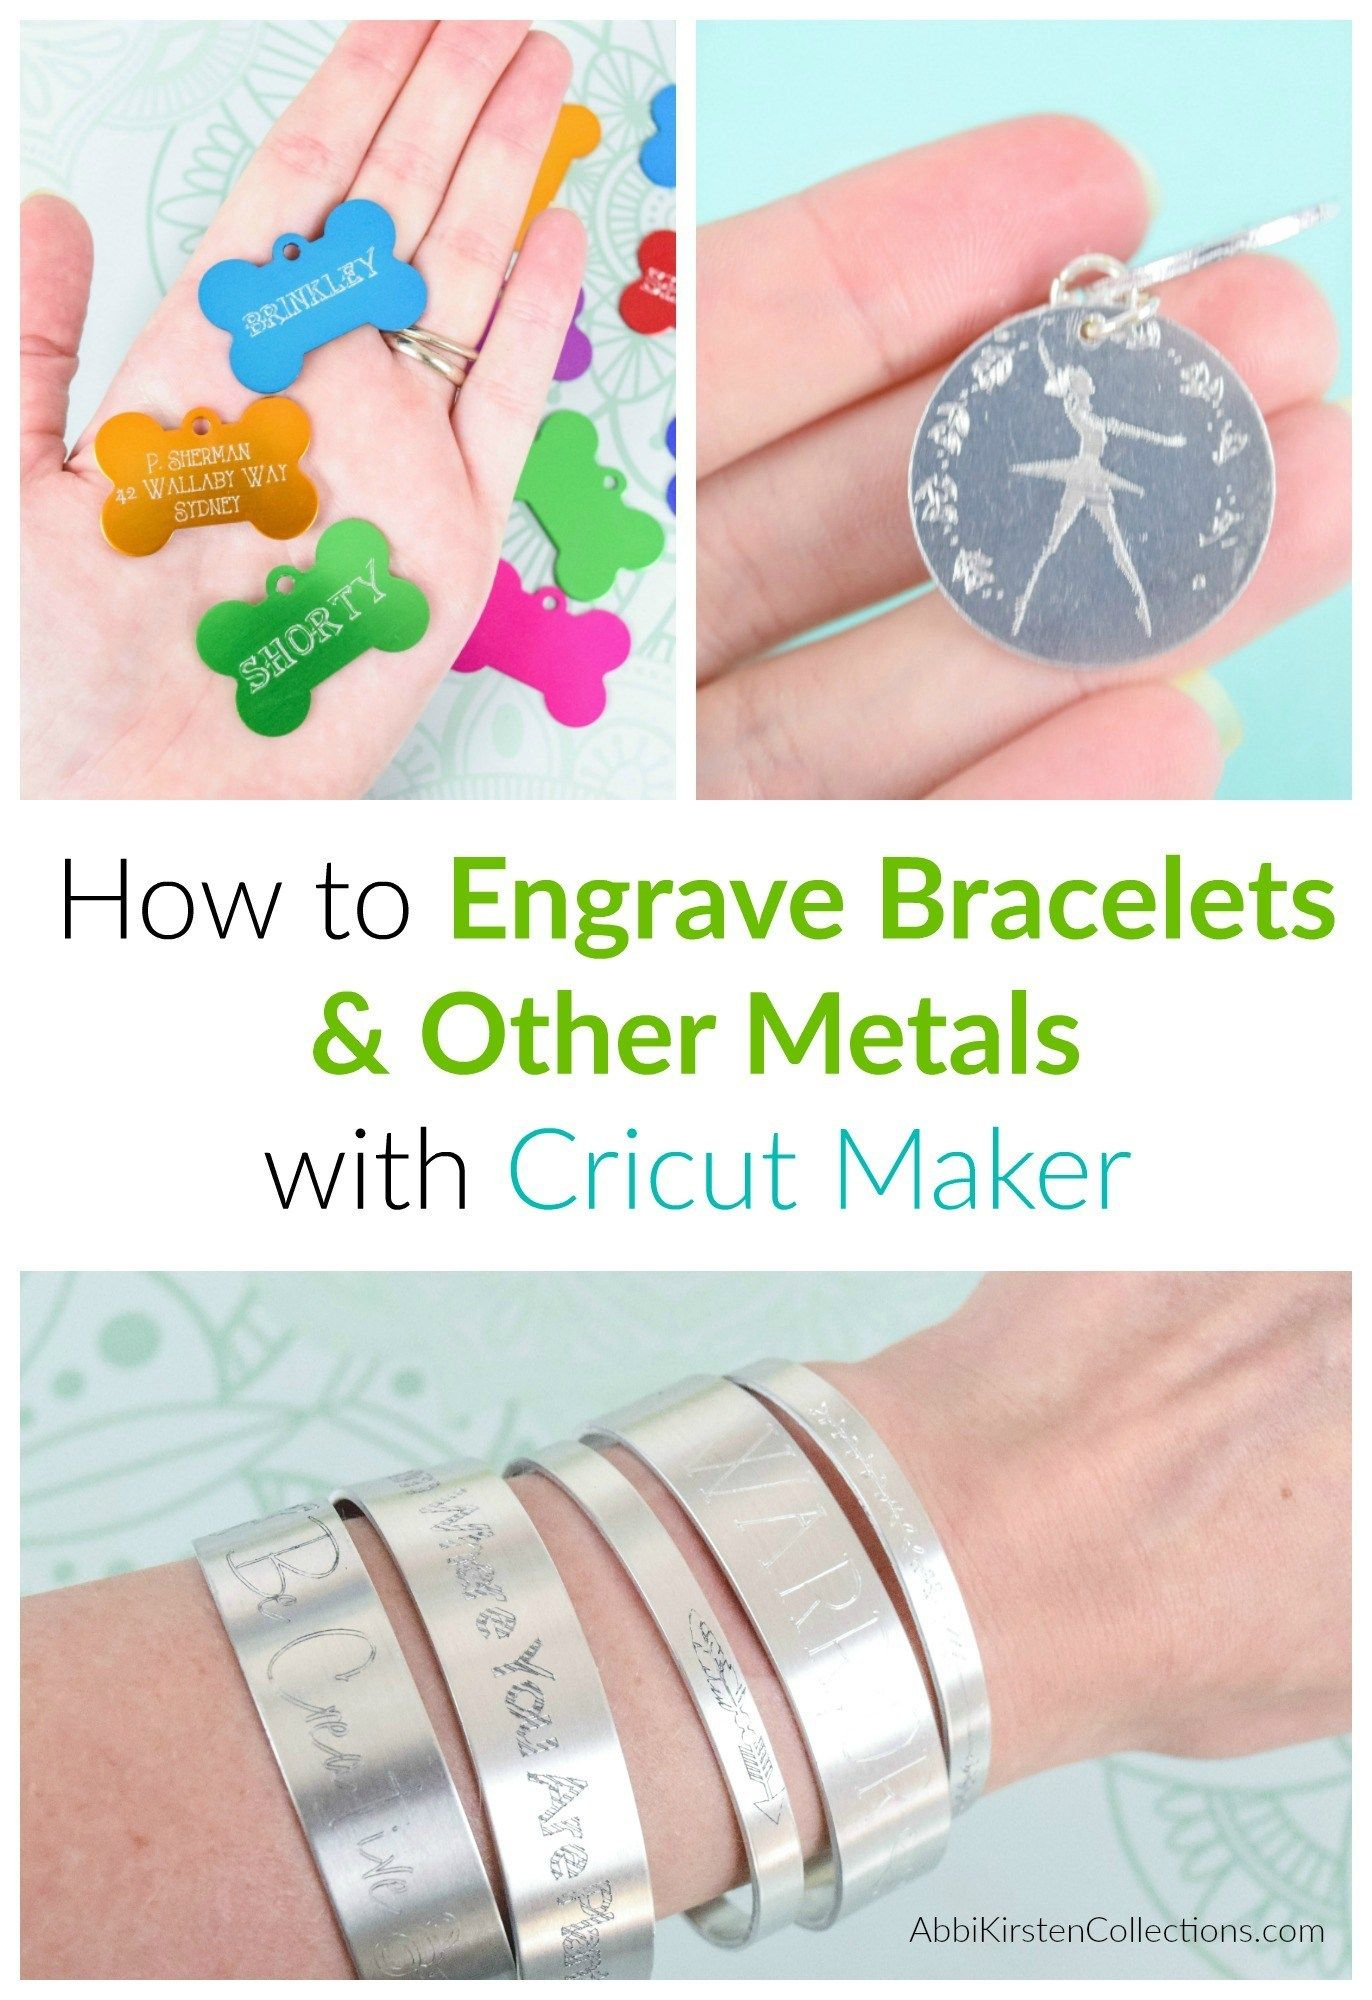 Engraving with Cricut Maker: How to Center Your Images or Text